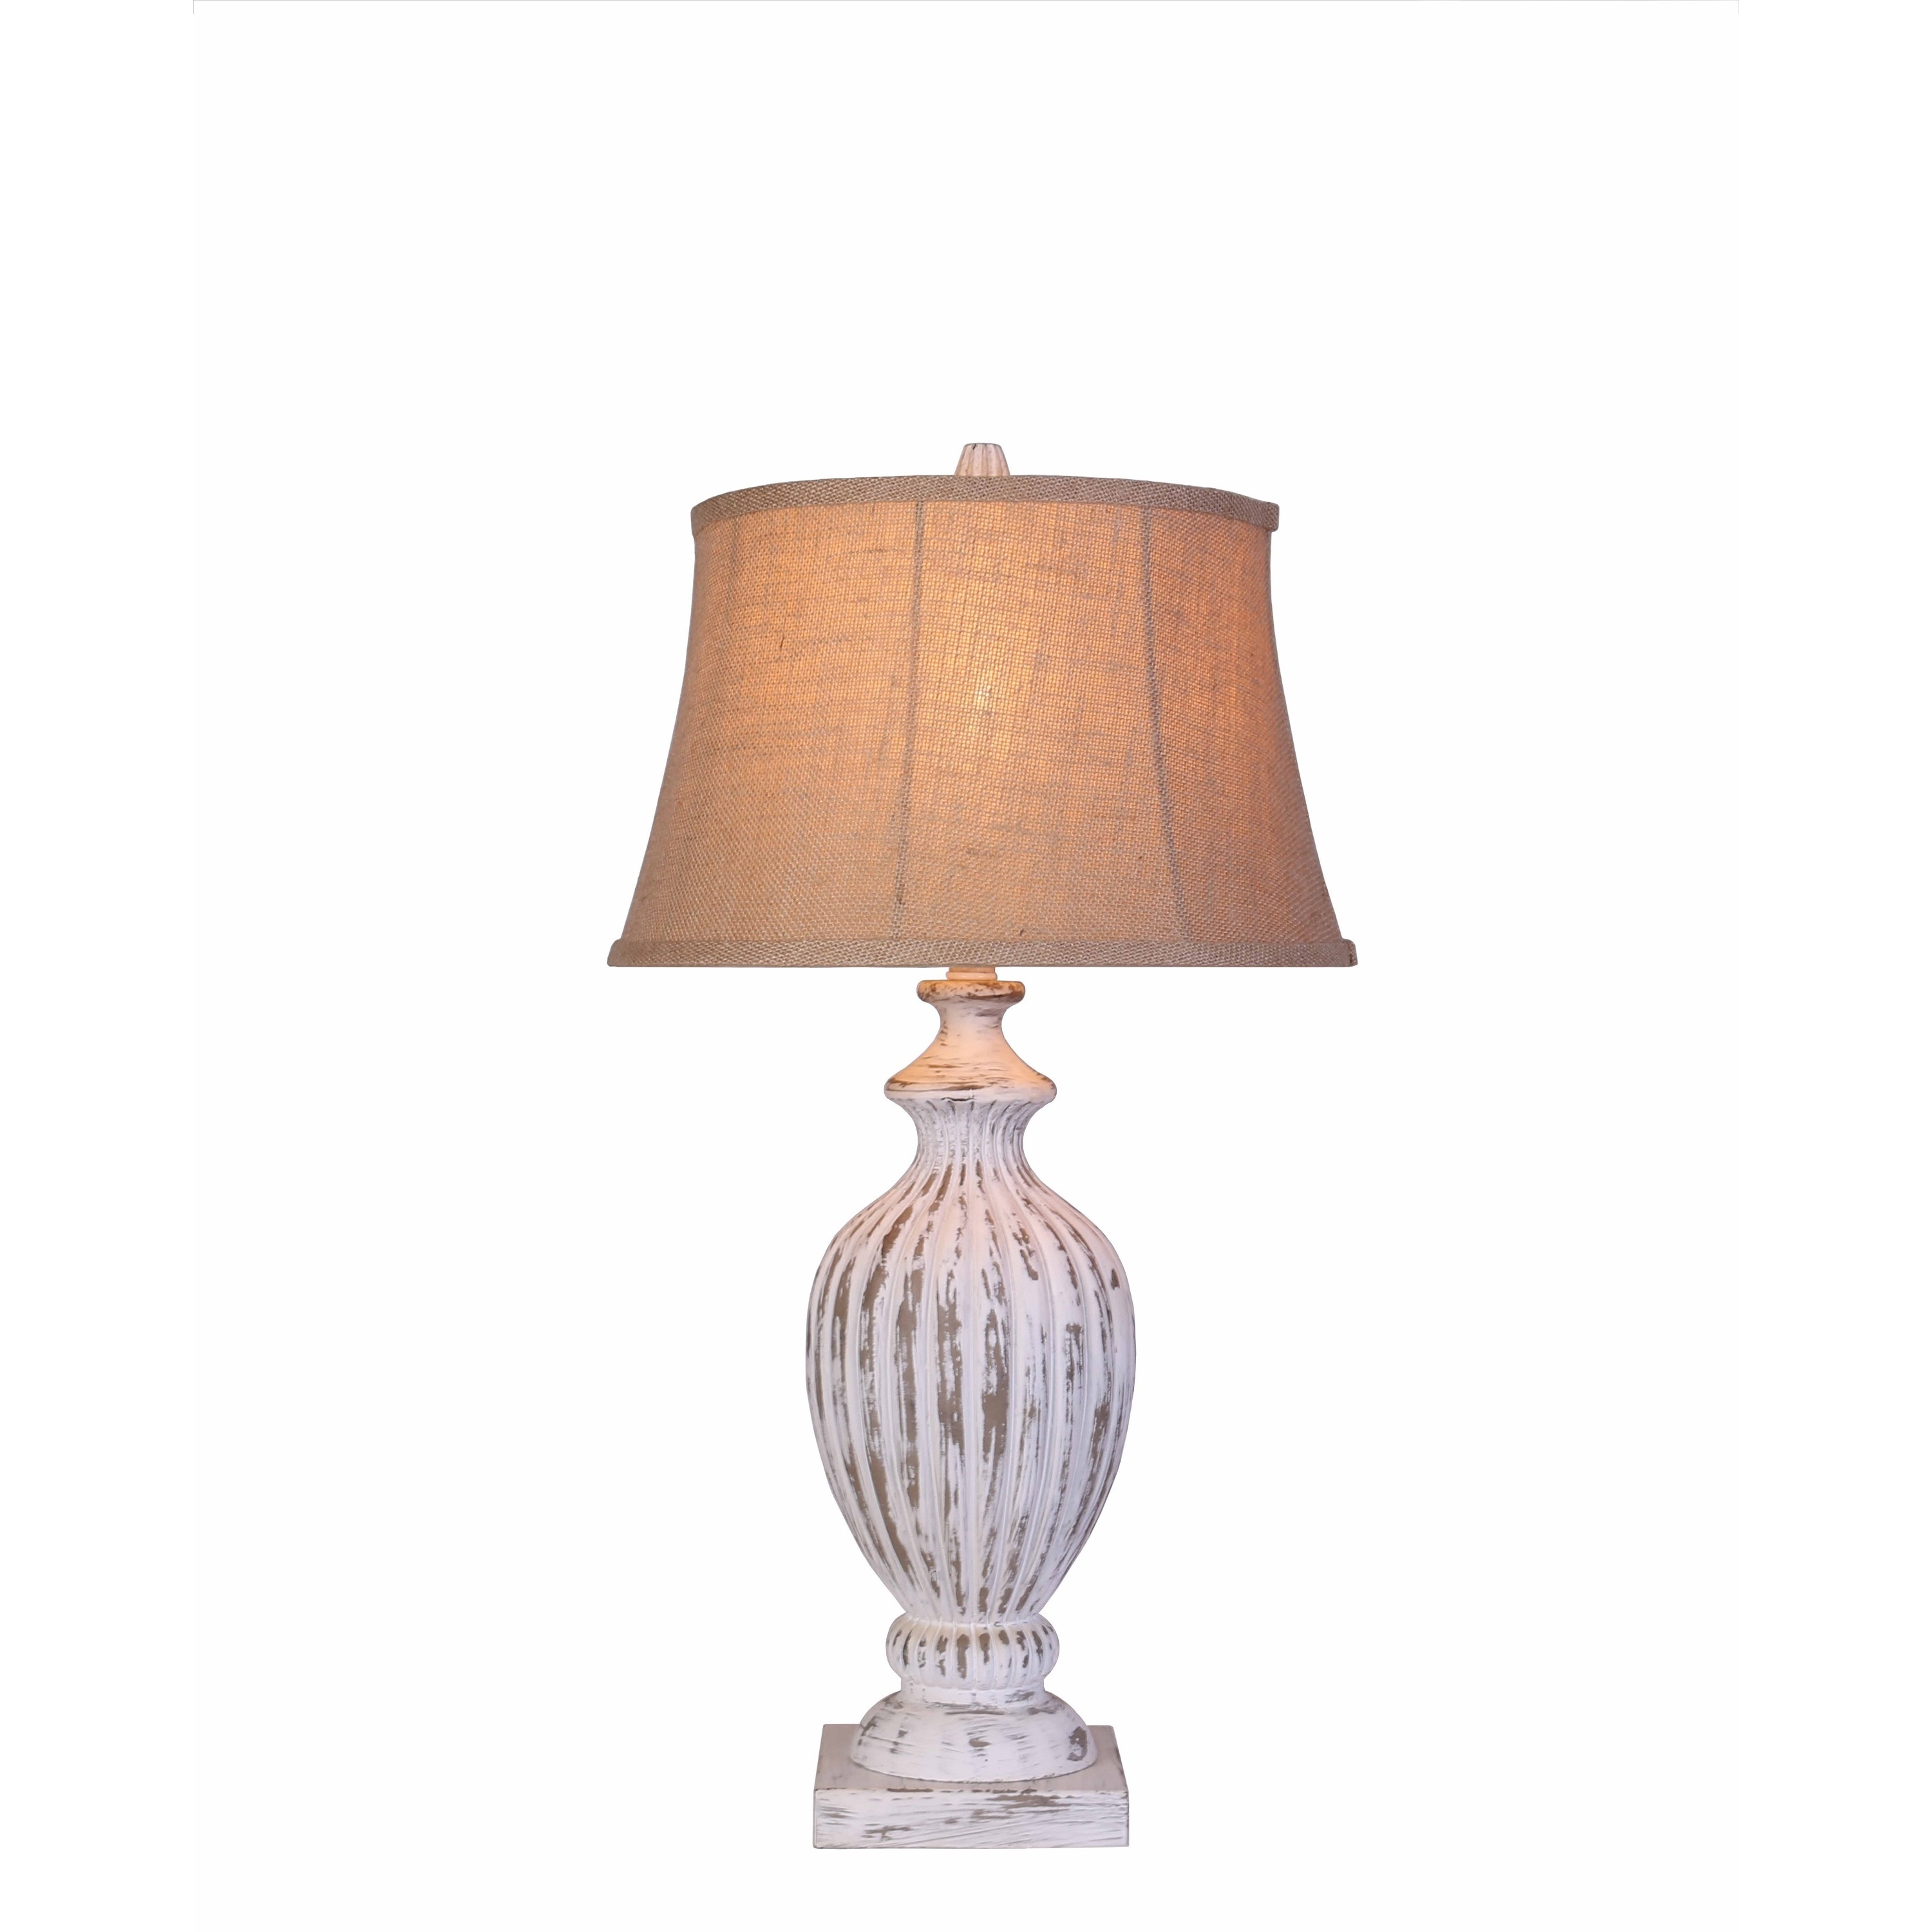 of lighting lamps fancy with wooden cheap s shape arm standard diy lovely pinterest flexible human heal rustic unique table crawford lamp